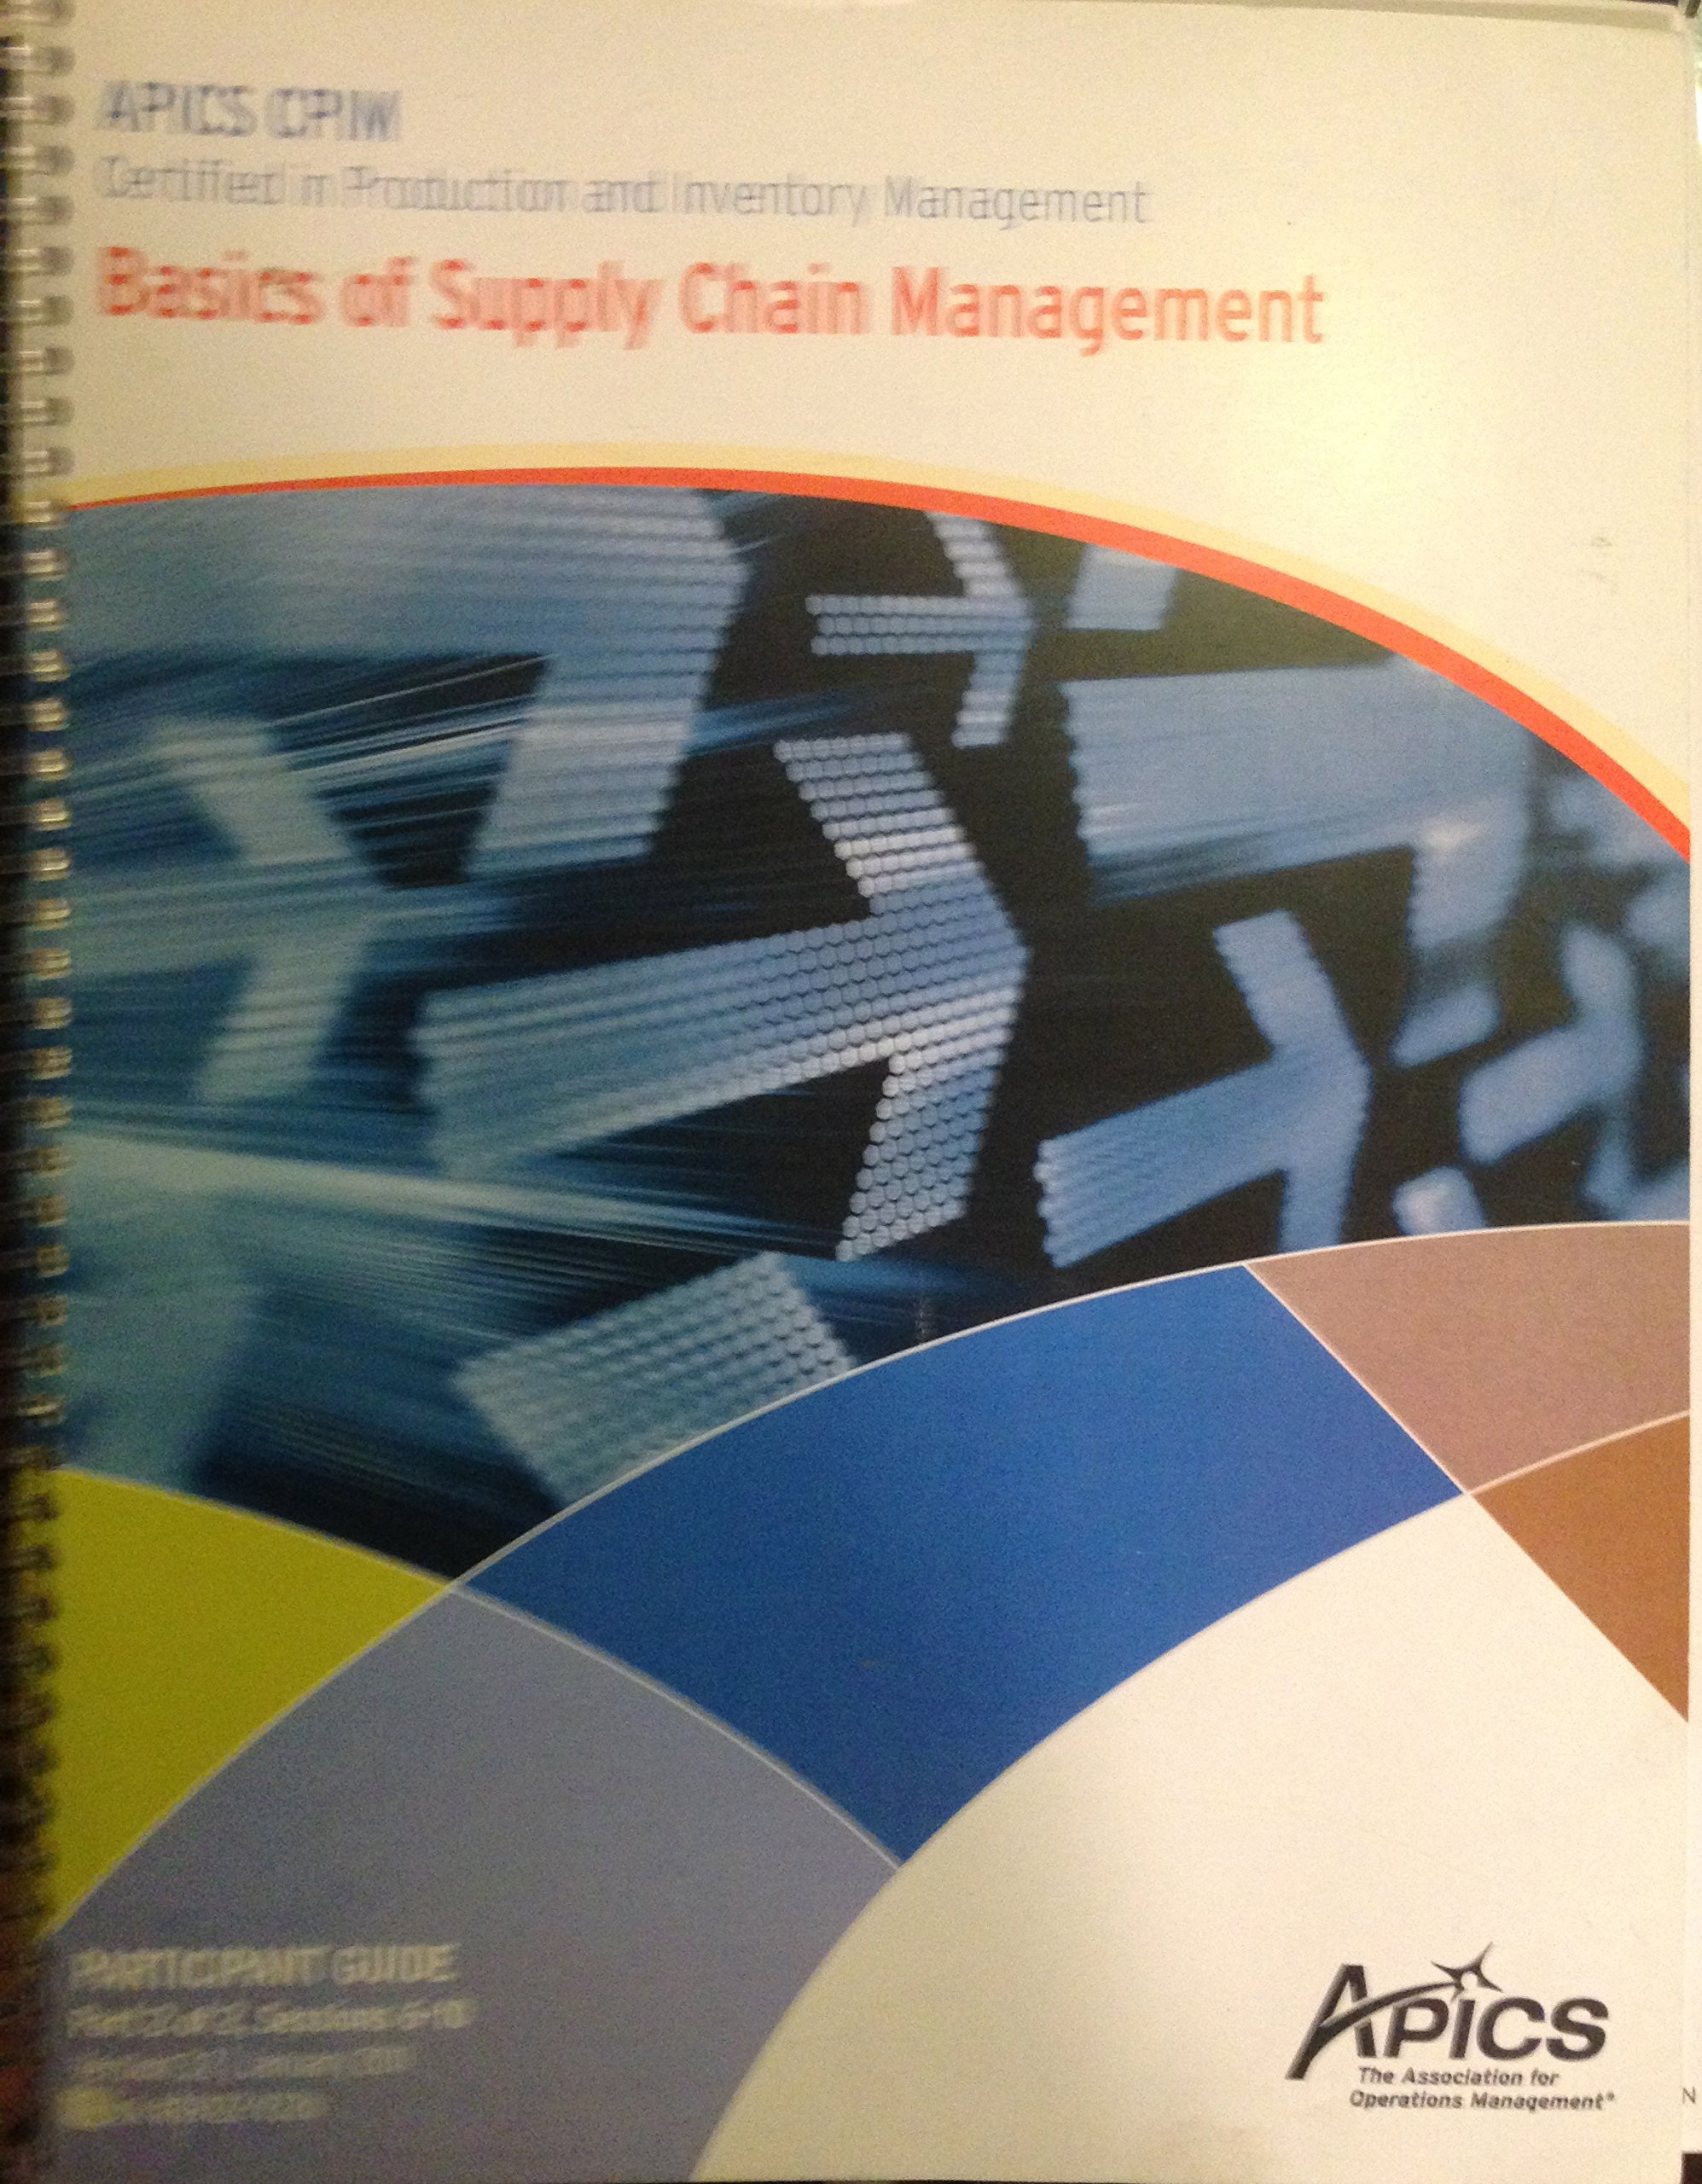 Apics Cpim Certified In Production And Inventory Management Basics